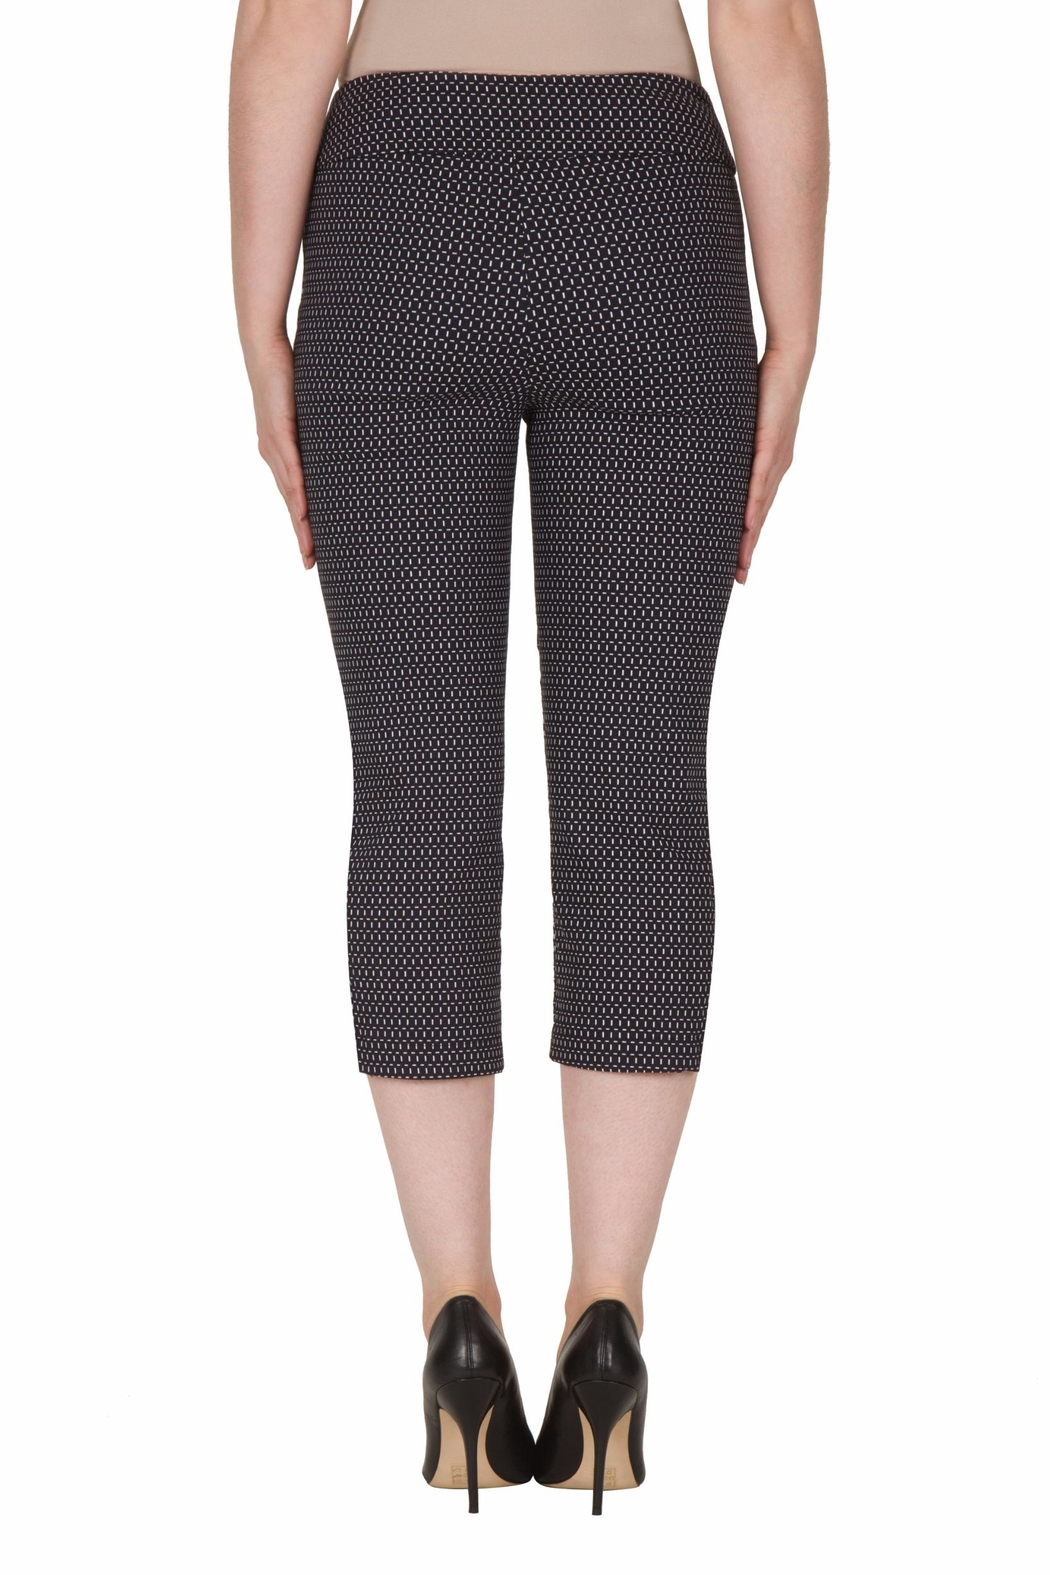 Joseph Ribkoff Cut Out Capri Pant - Side Cropped Image